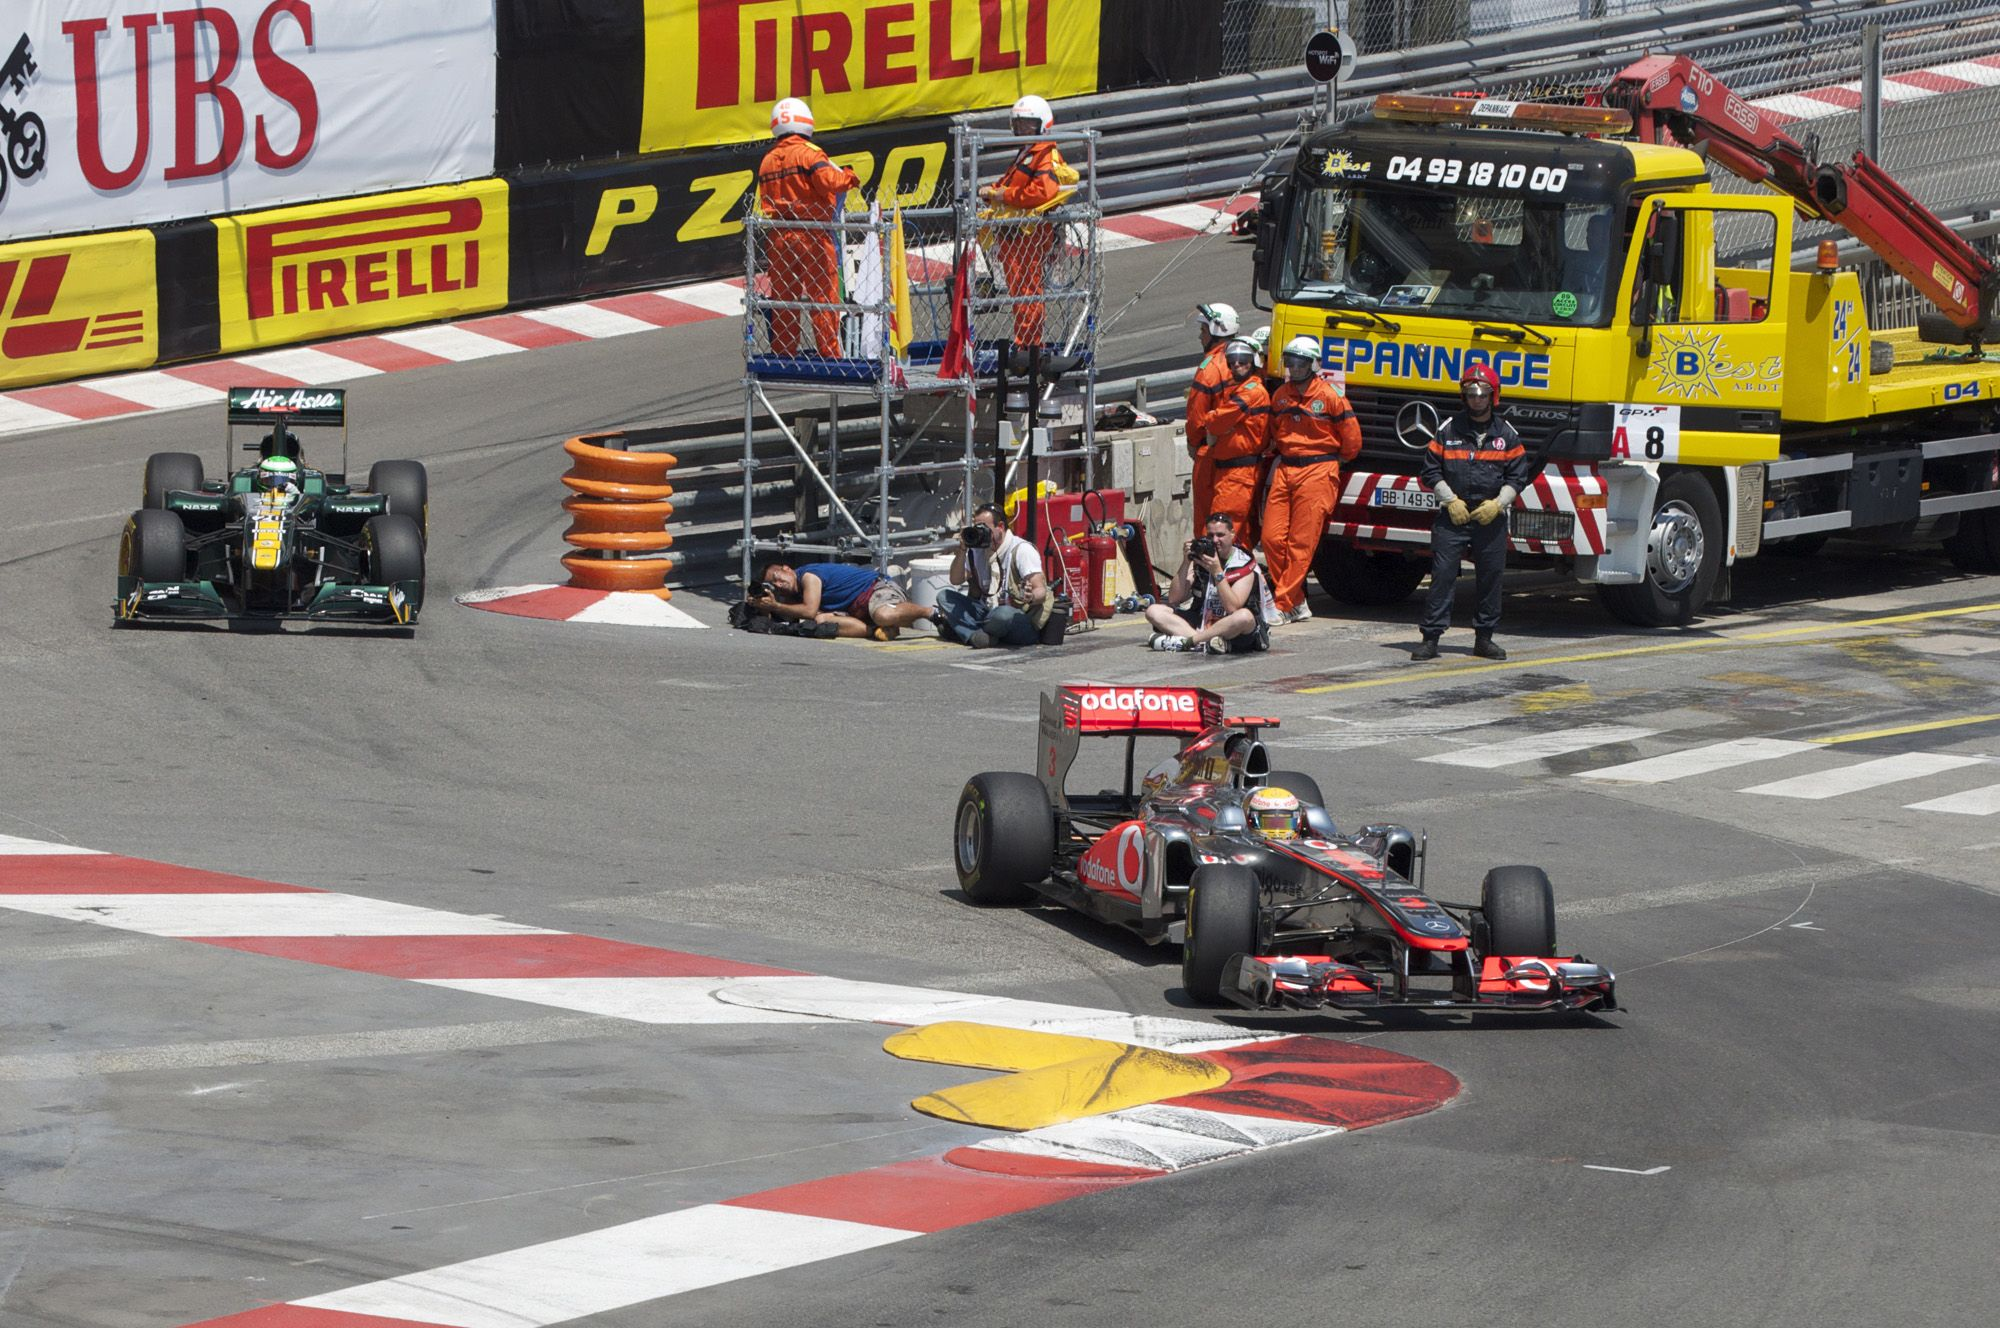 Monaco Grand Prix, car crashes, monaco, grand prix, formula one